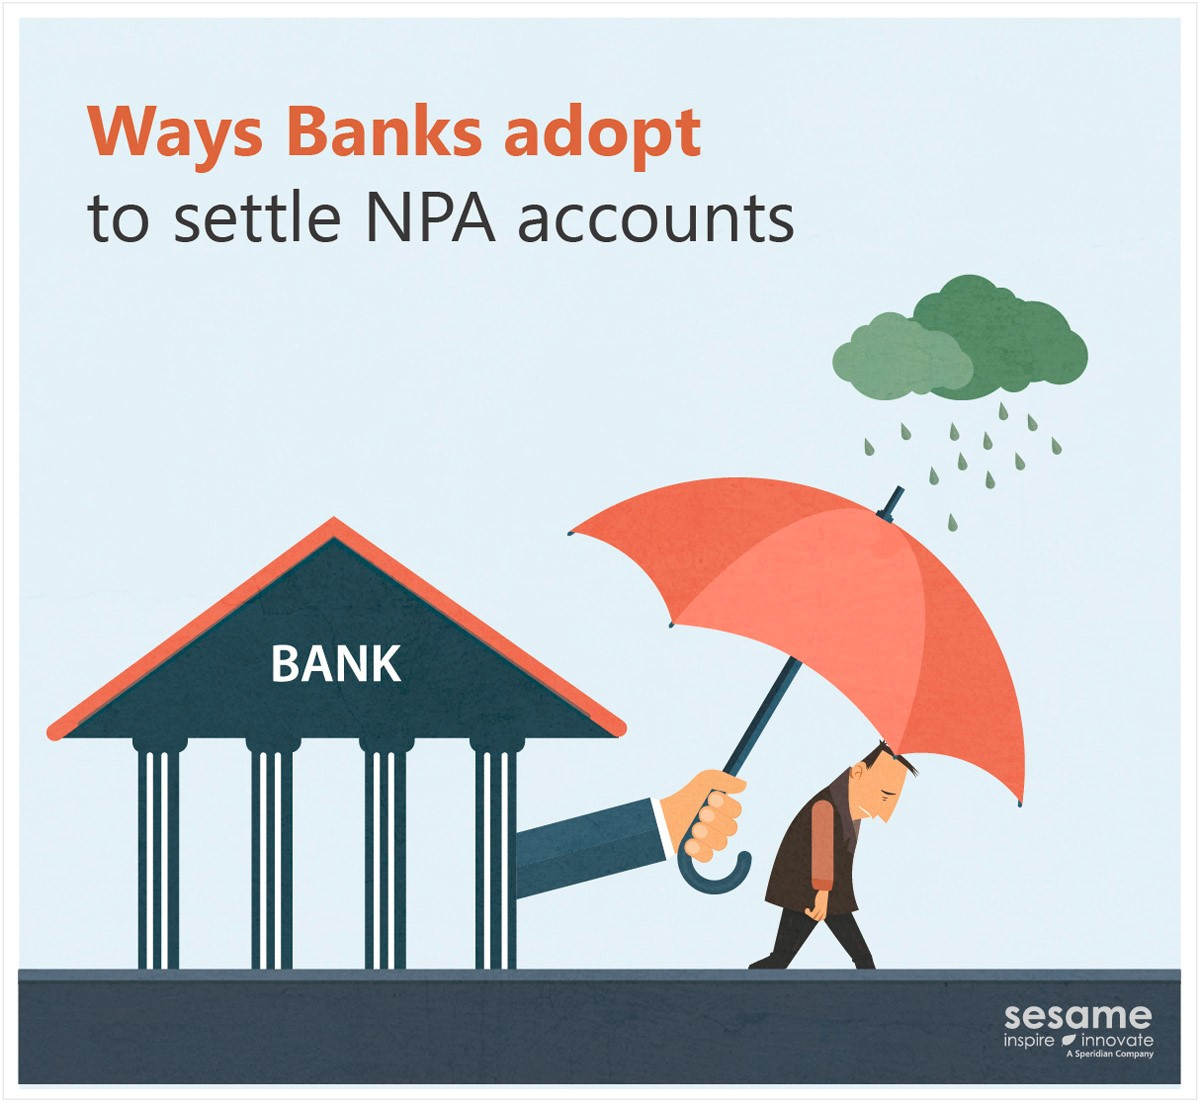 npa account settlement